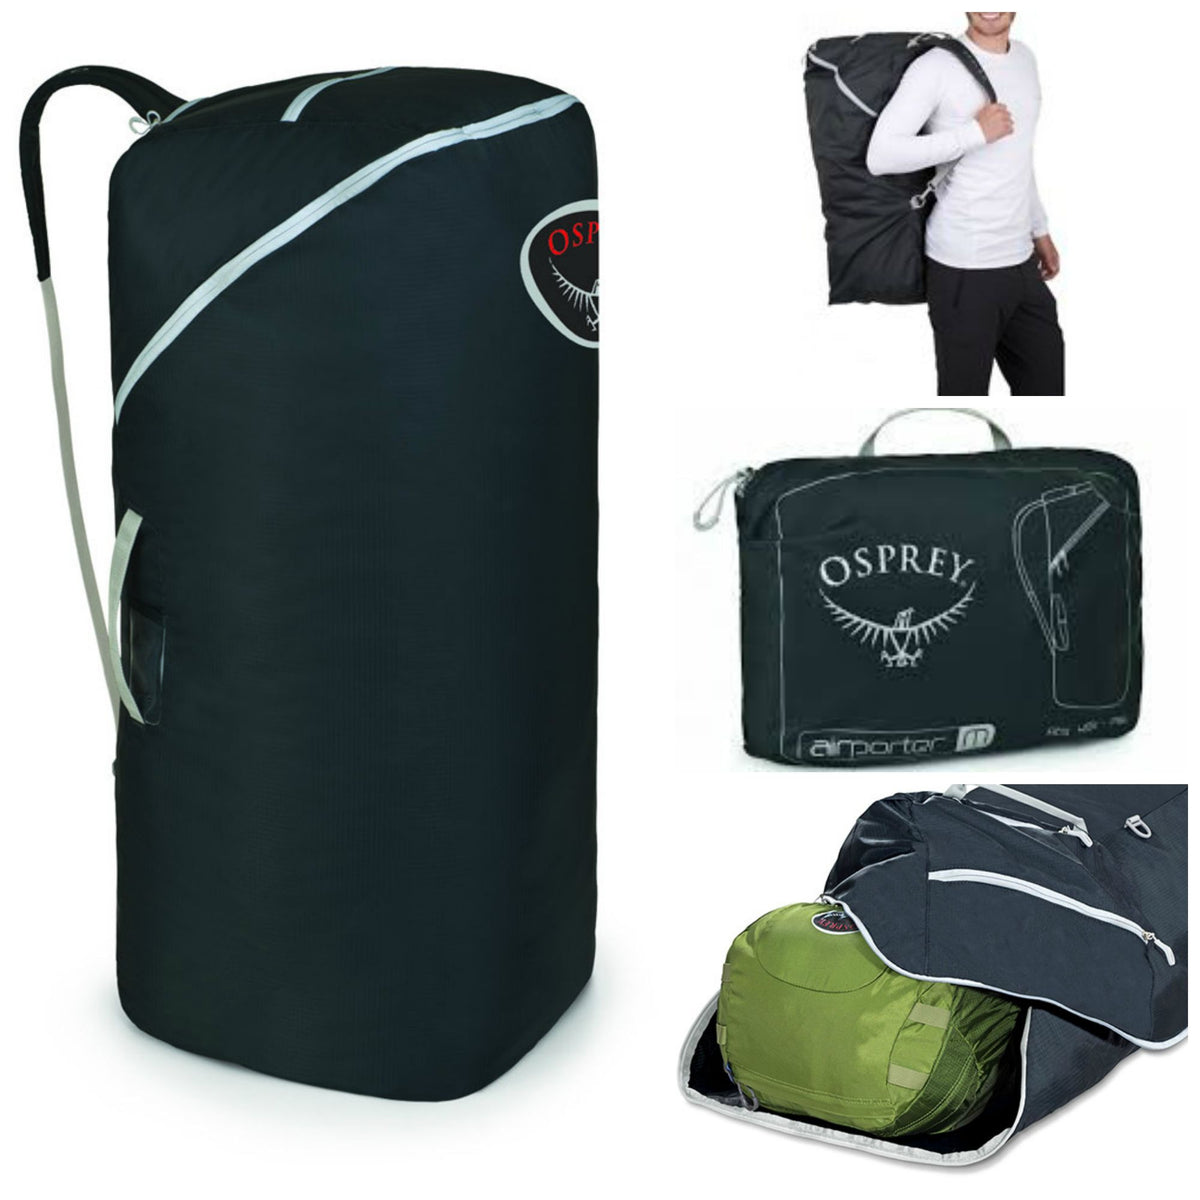 62a261d73d83 Osprey Airporter Lz Backpack Travel Cover Large